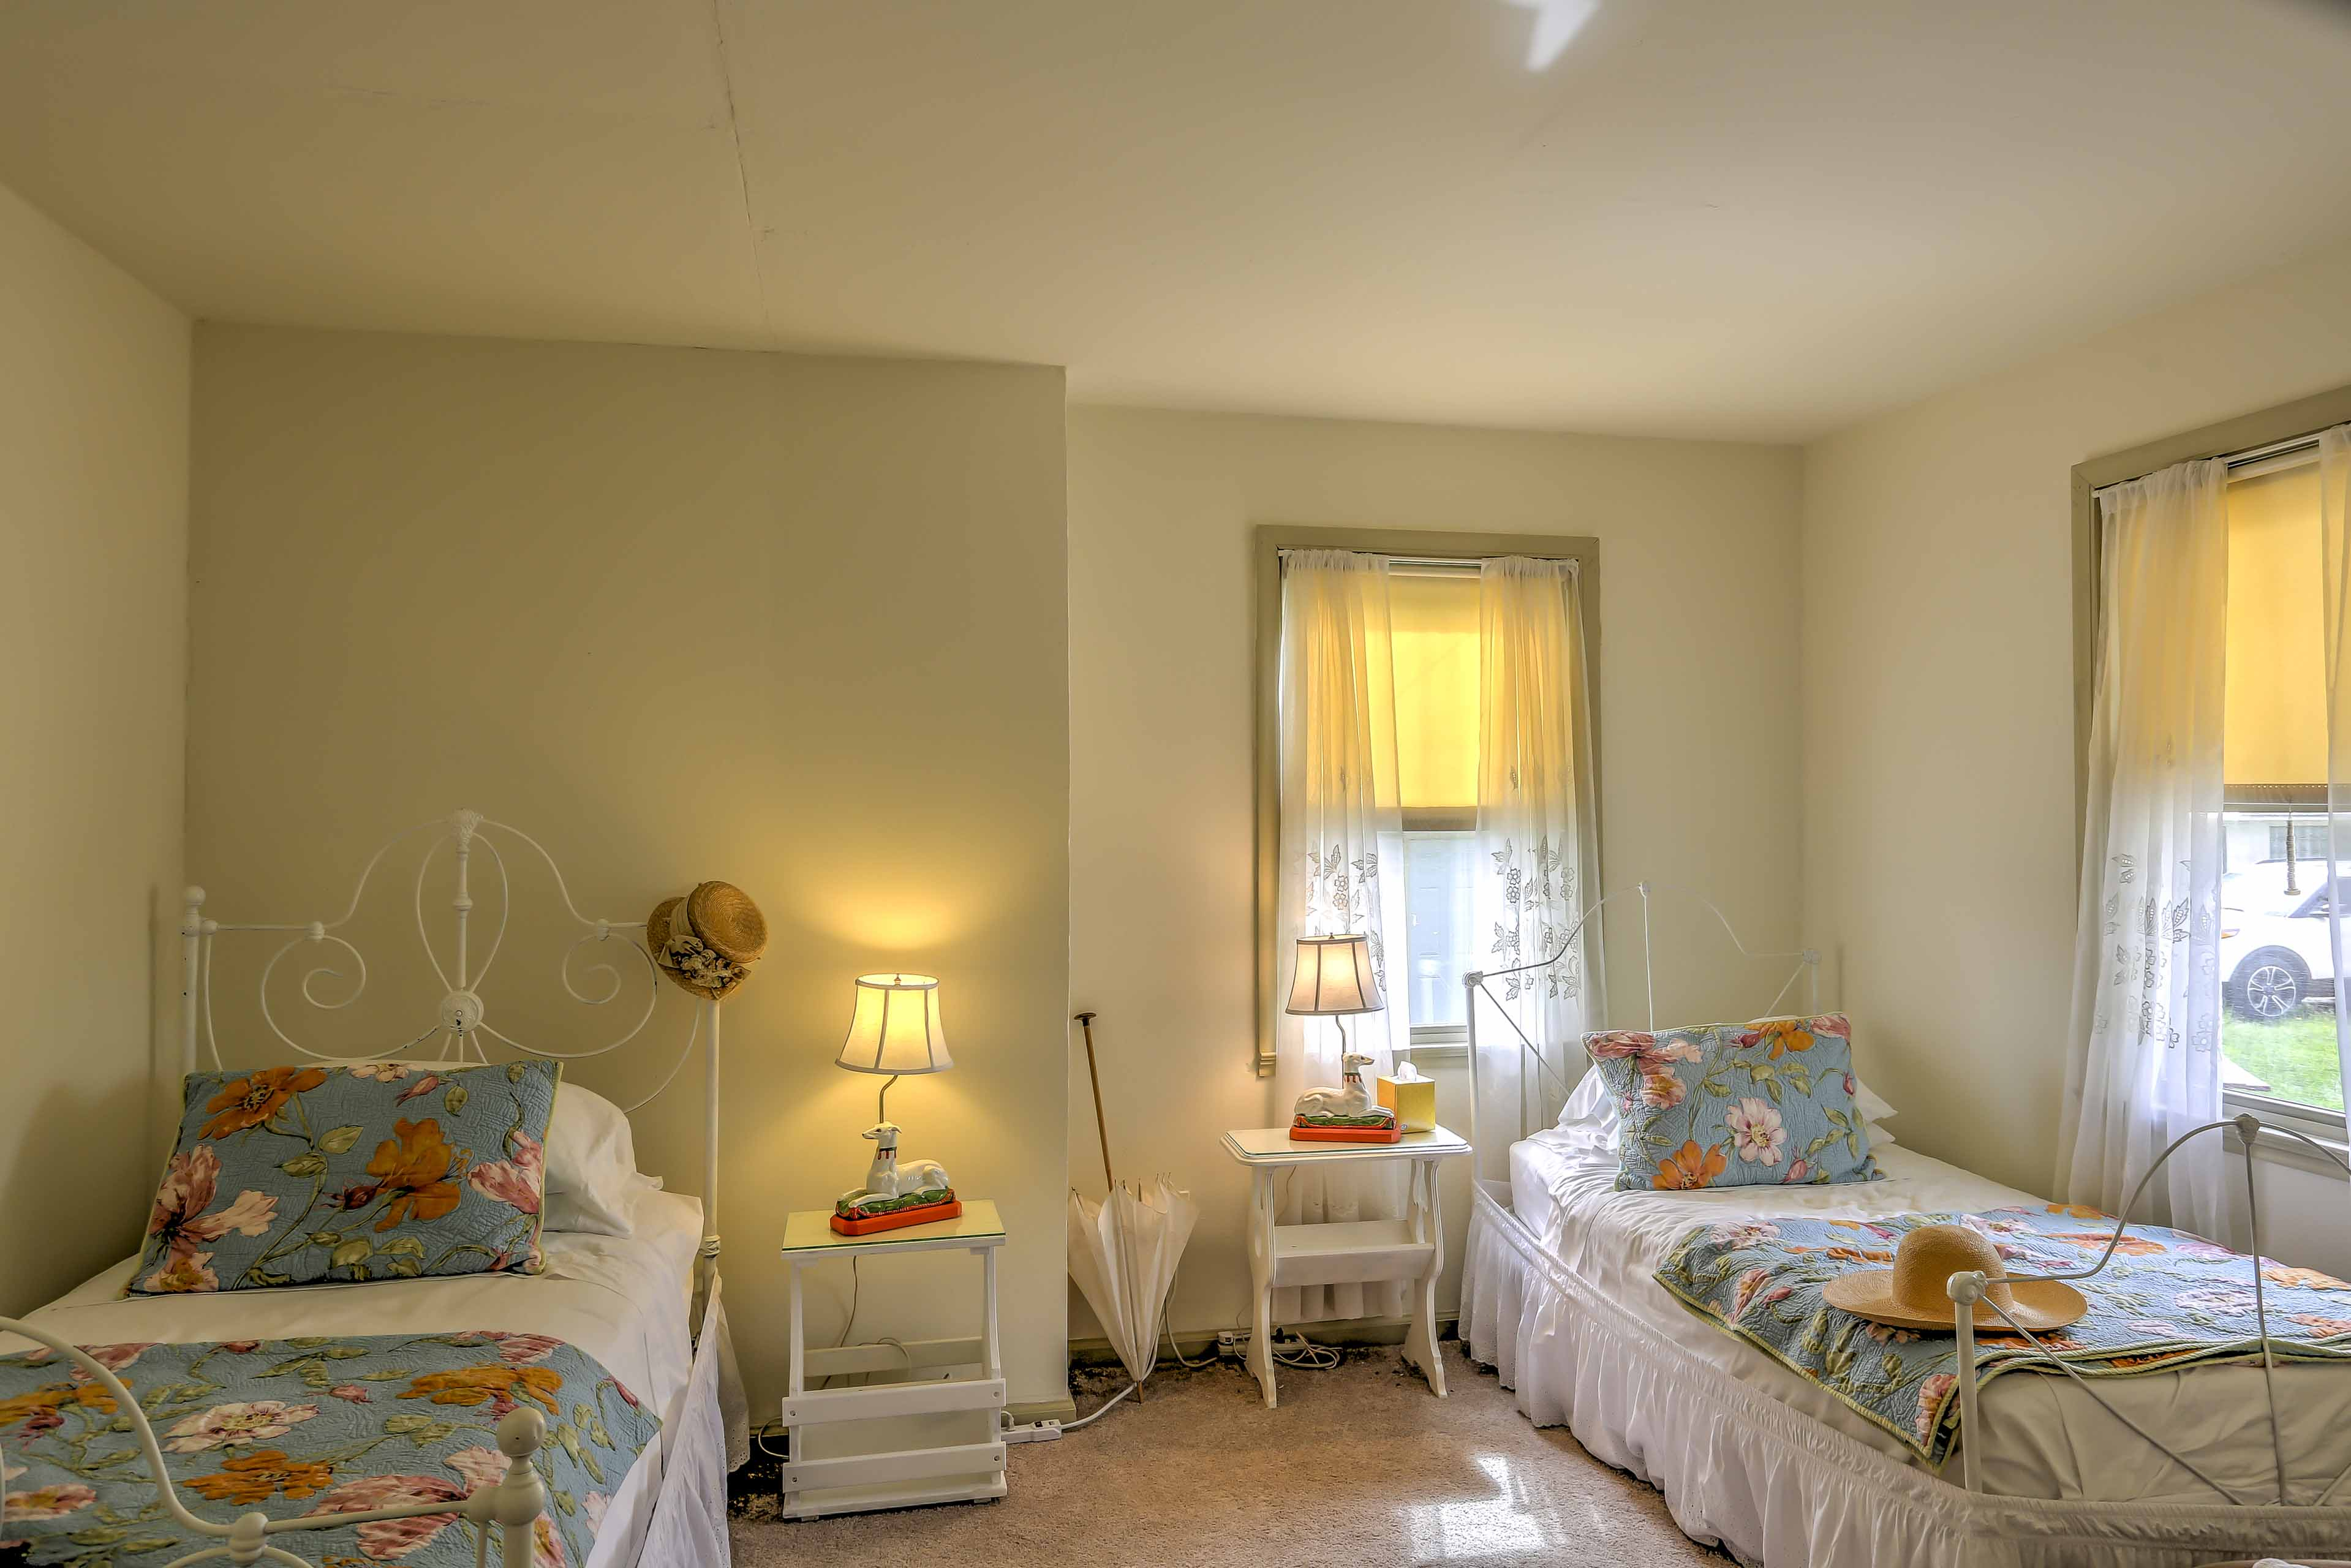 This bedroom provides 2 twin-sized beds, perfect for younger travelers.